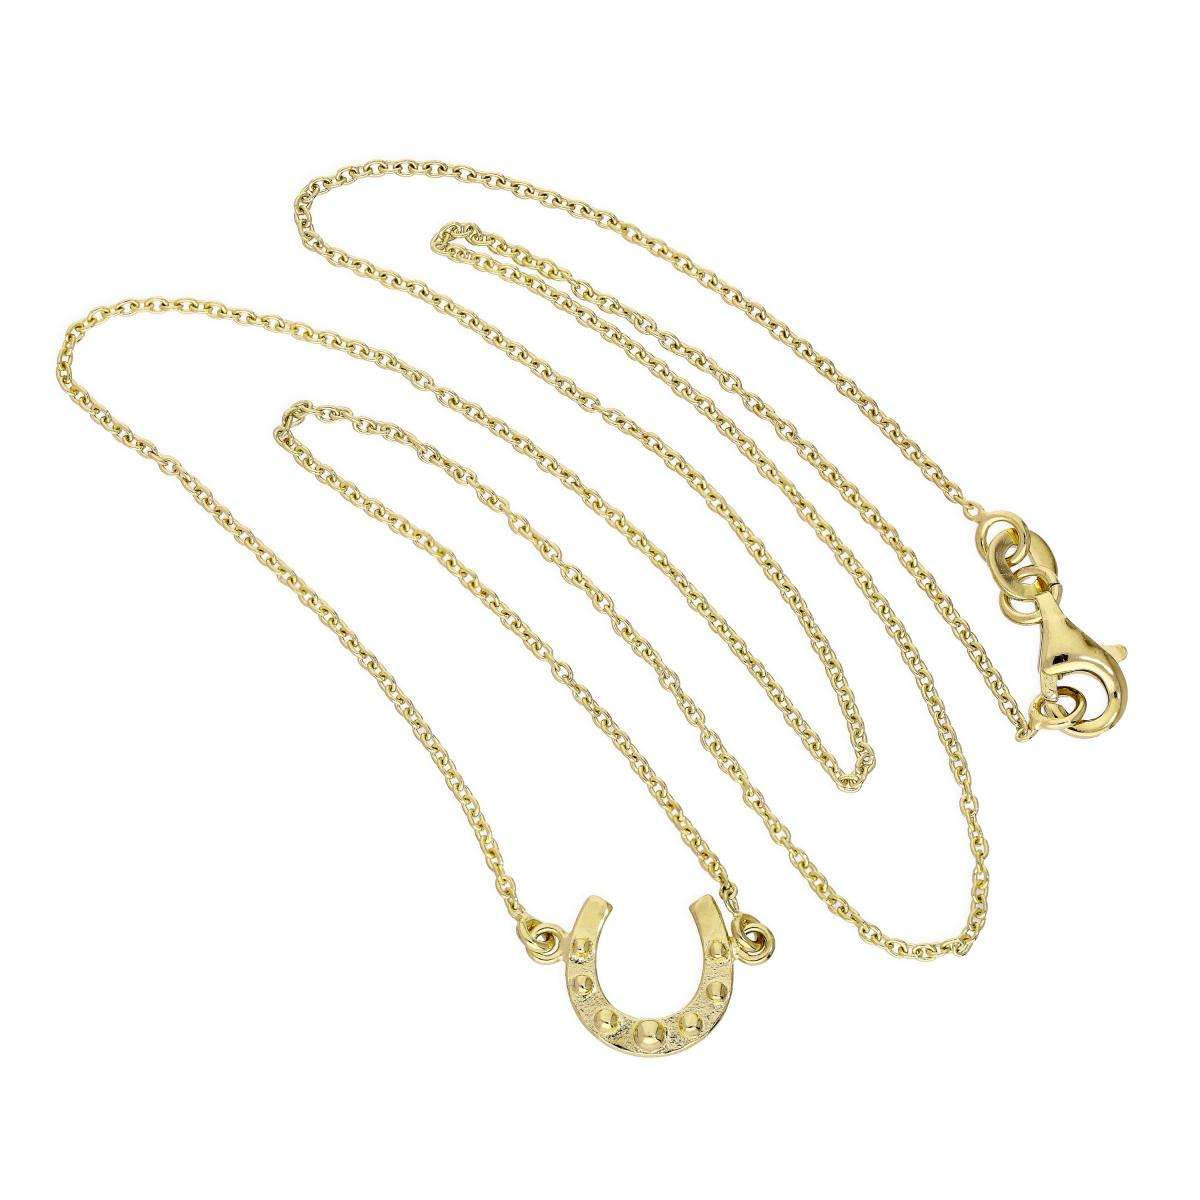 Alterative image for Gold Plated Sterling Silver Lucky Horseshoe Necklace